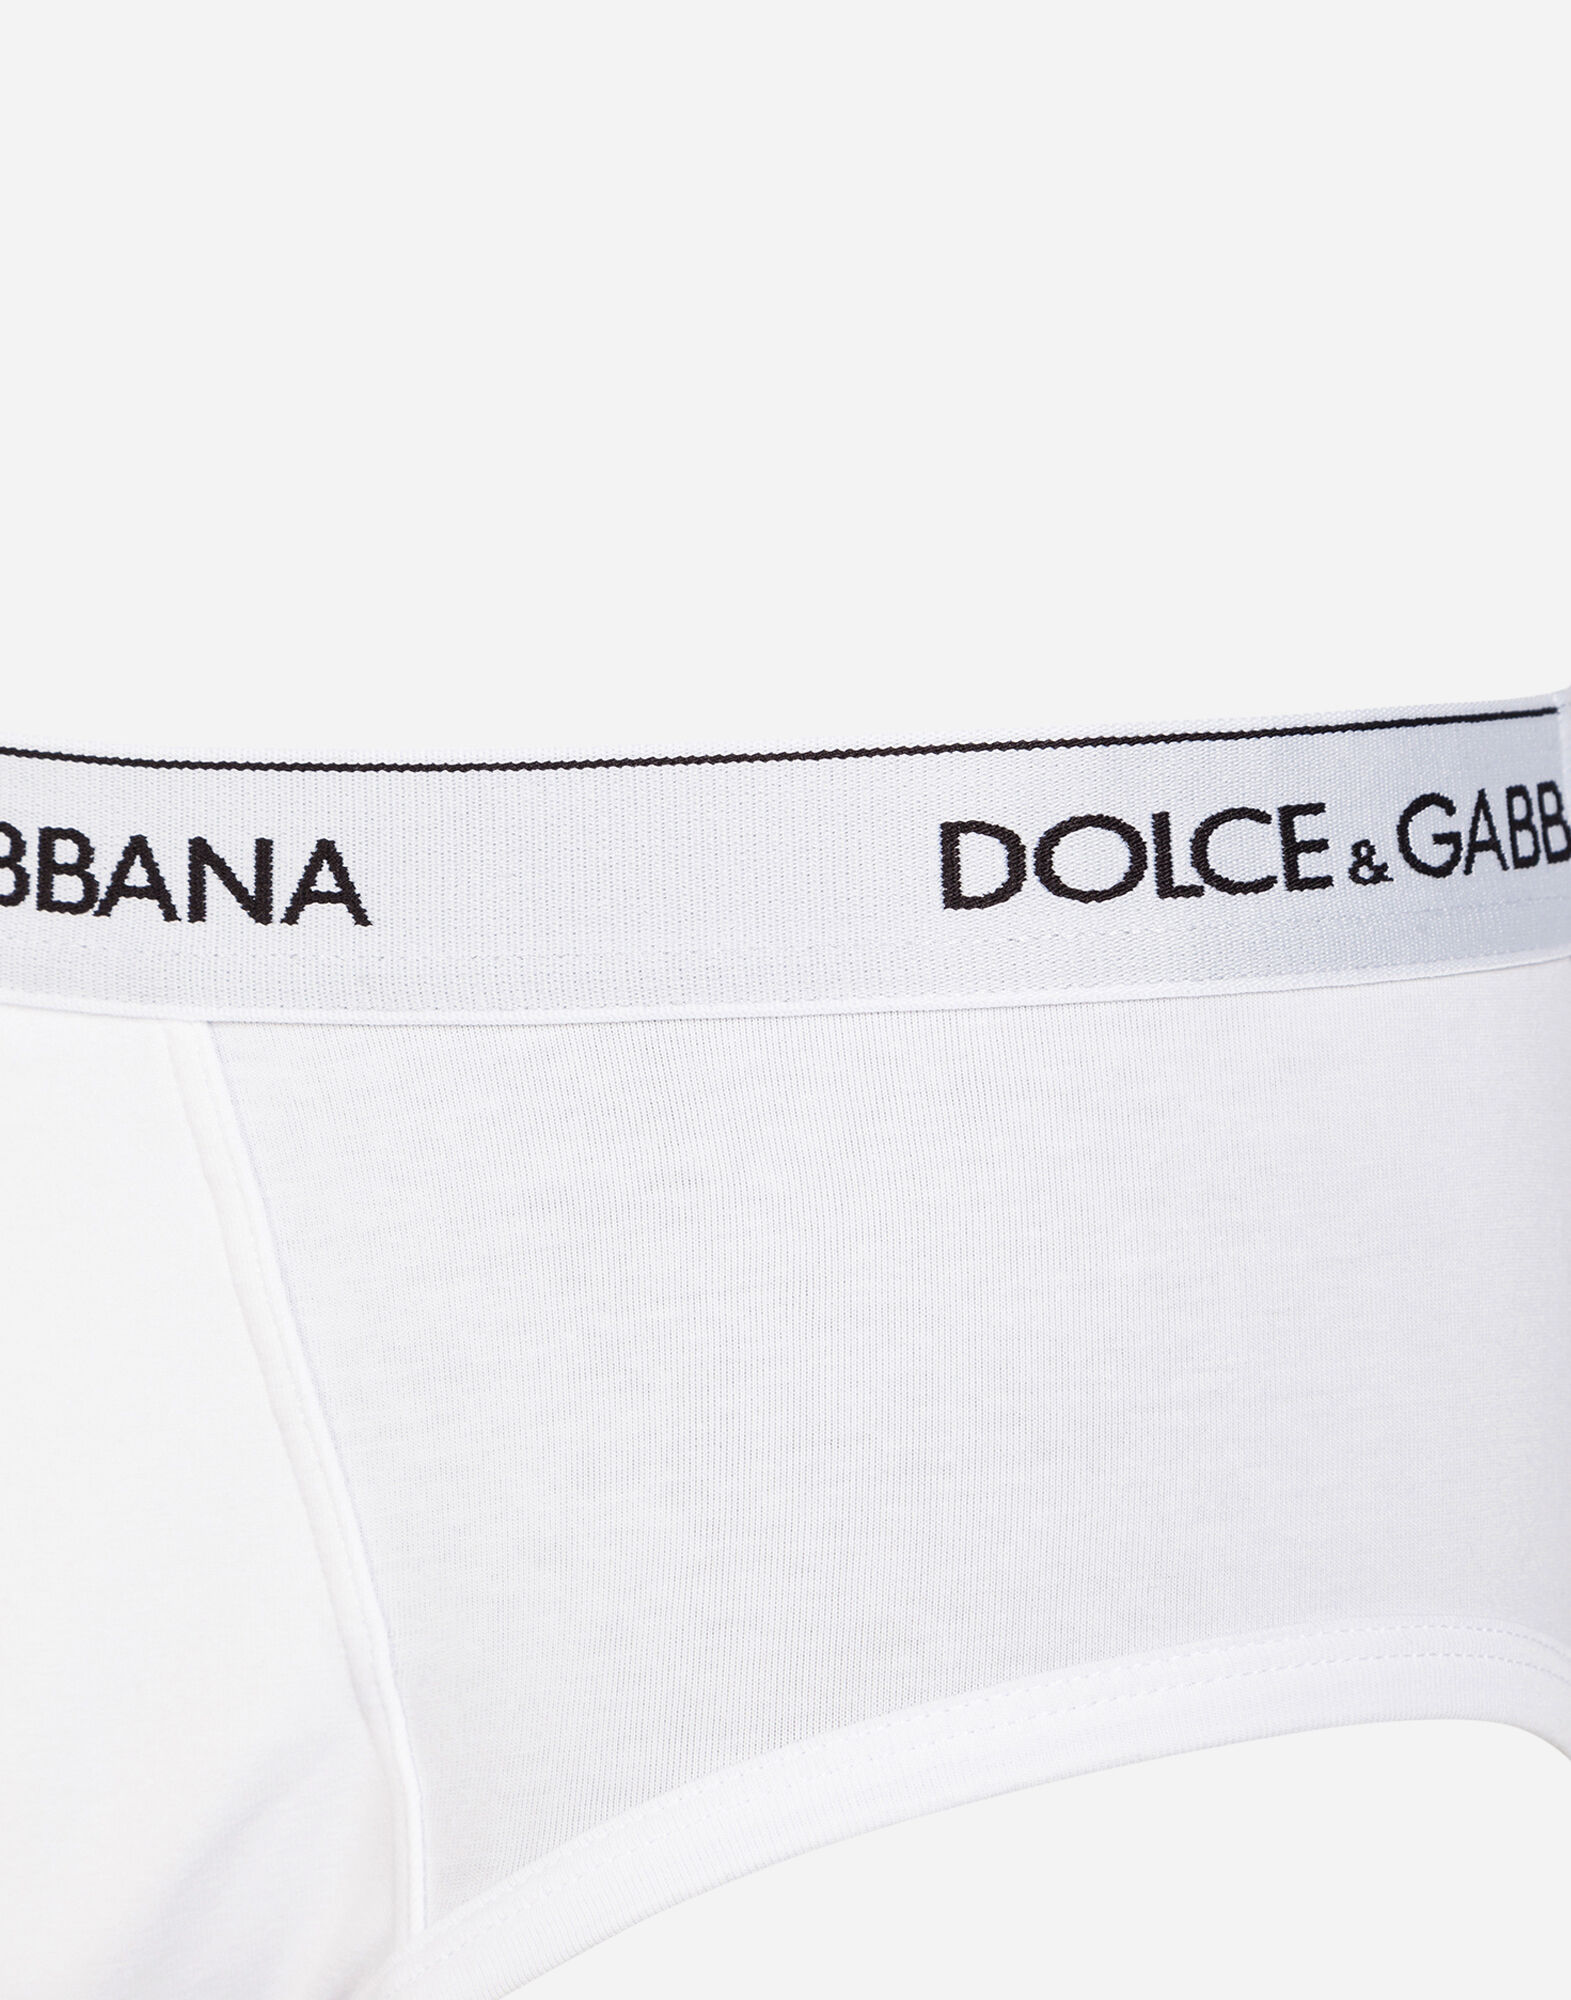 Dolce&Gabbana SET OF 2 COTTON SLIPS